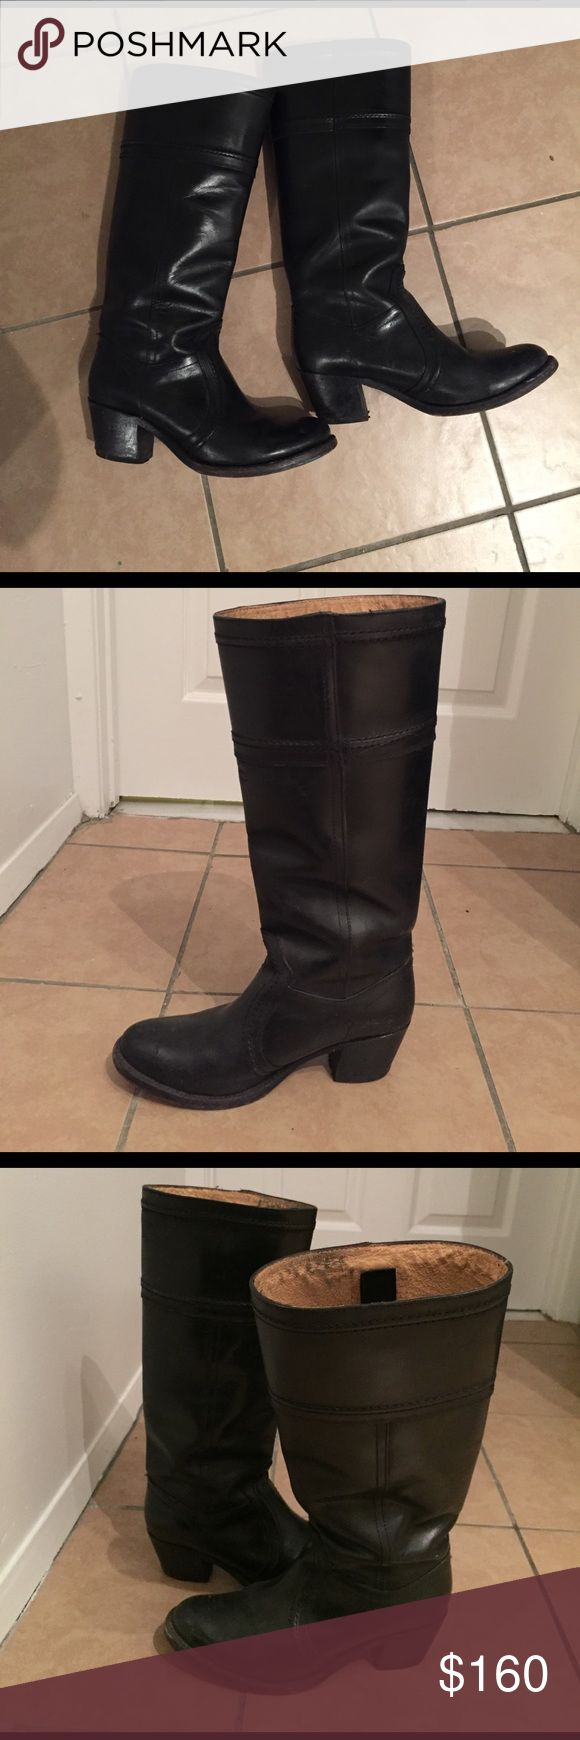 Black Heeled Frye Riding Boots Lightly worn beautiful riding boots. Heel is about 2.5 inches. Loose around the calf and looks great with pants or a dress. Frye Shoes Heeled Boots